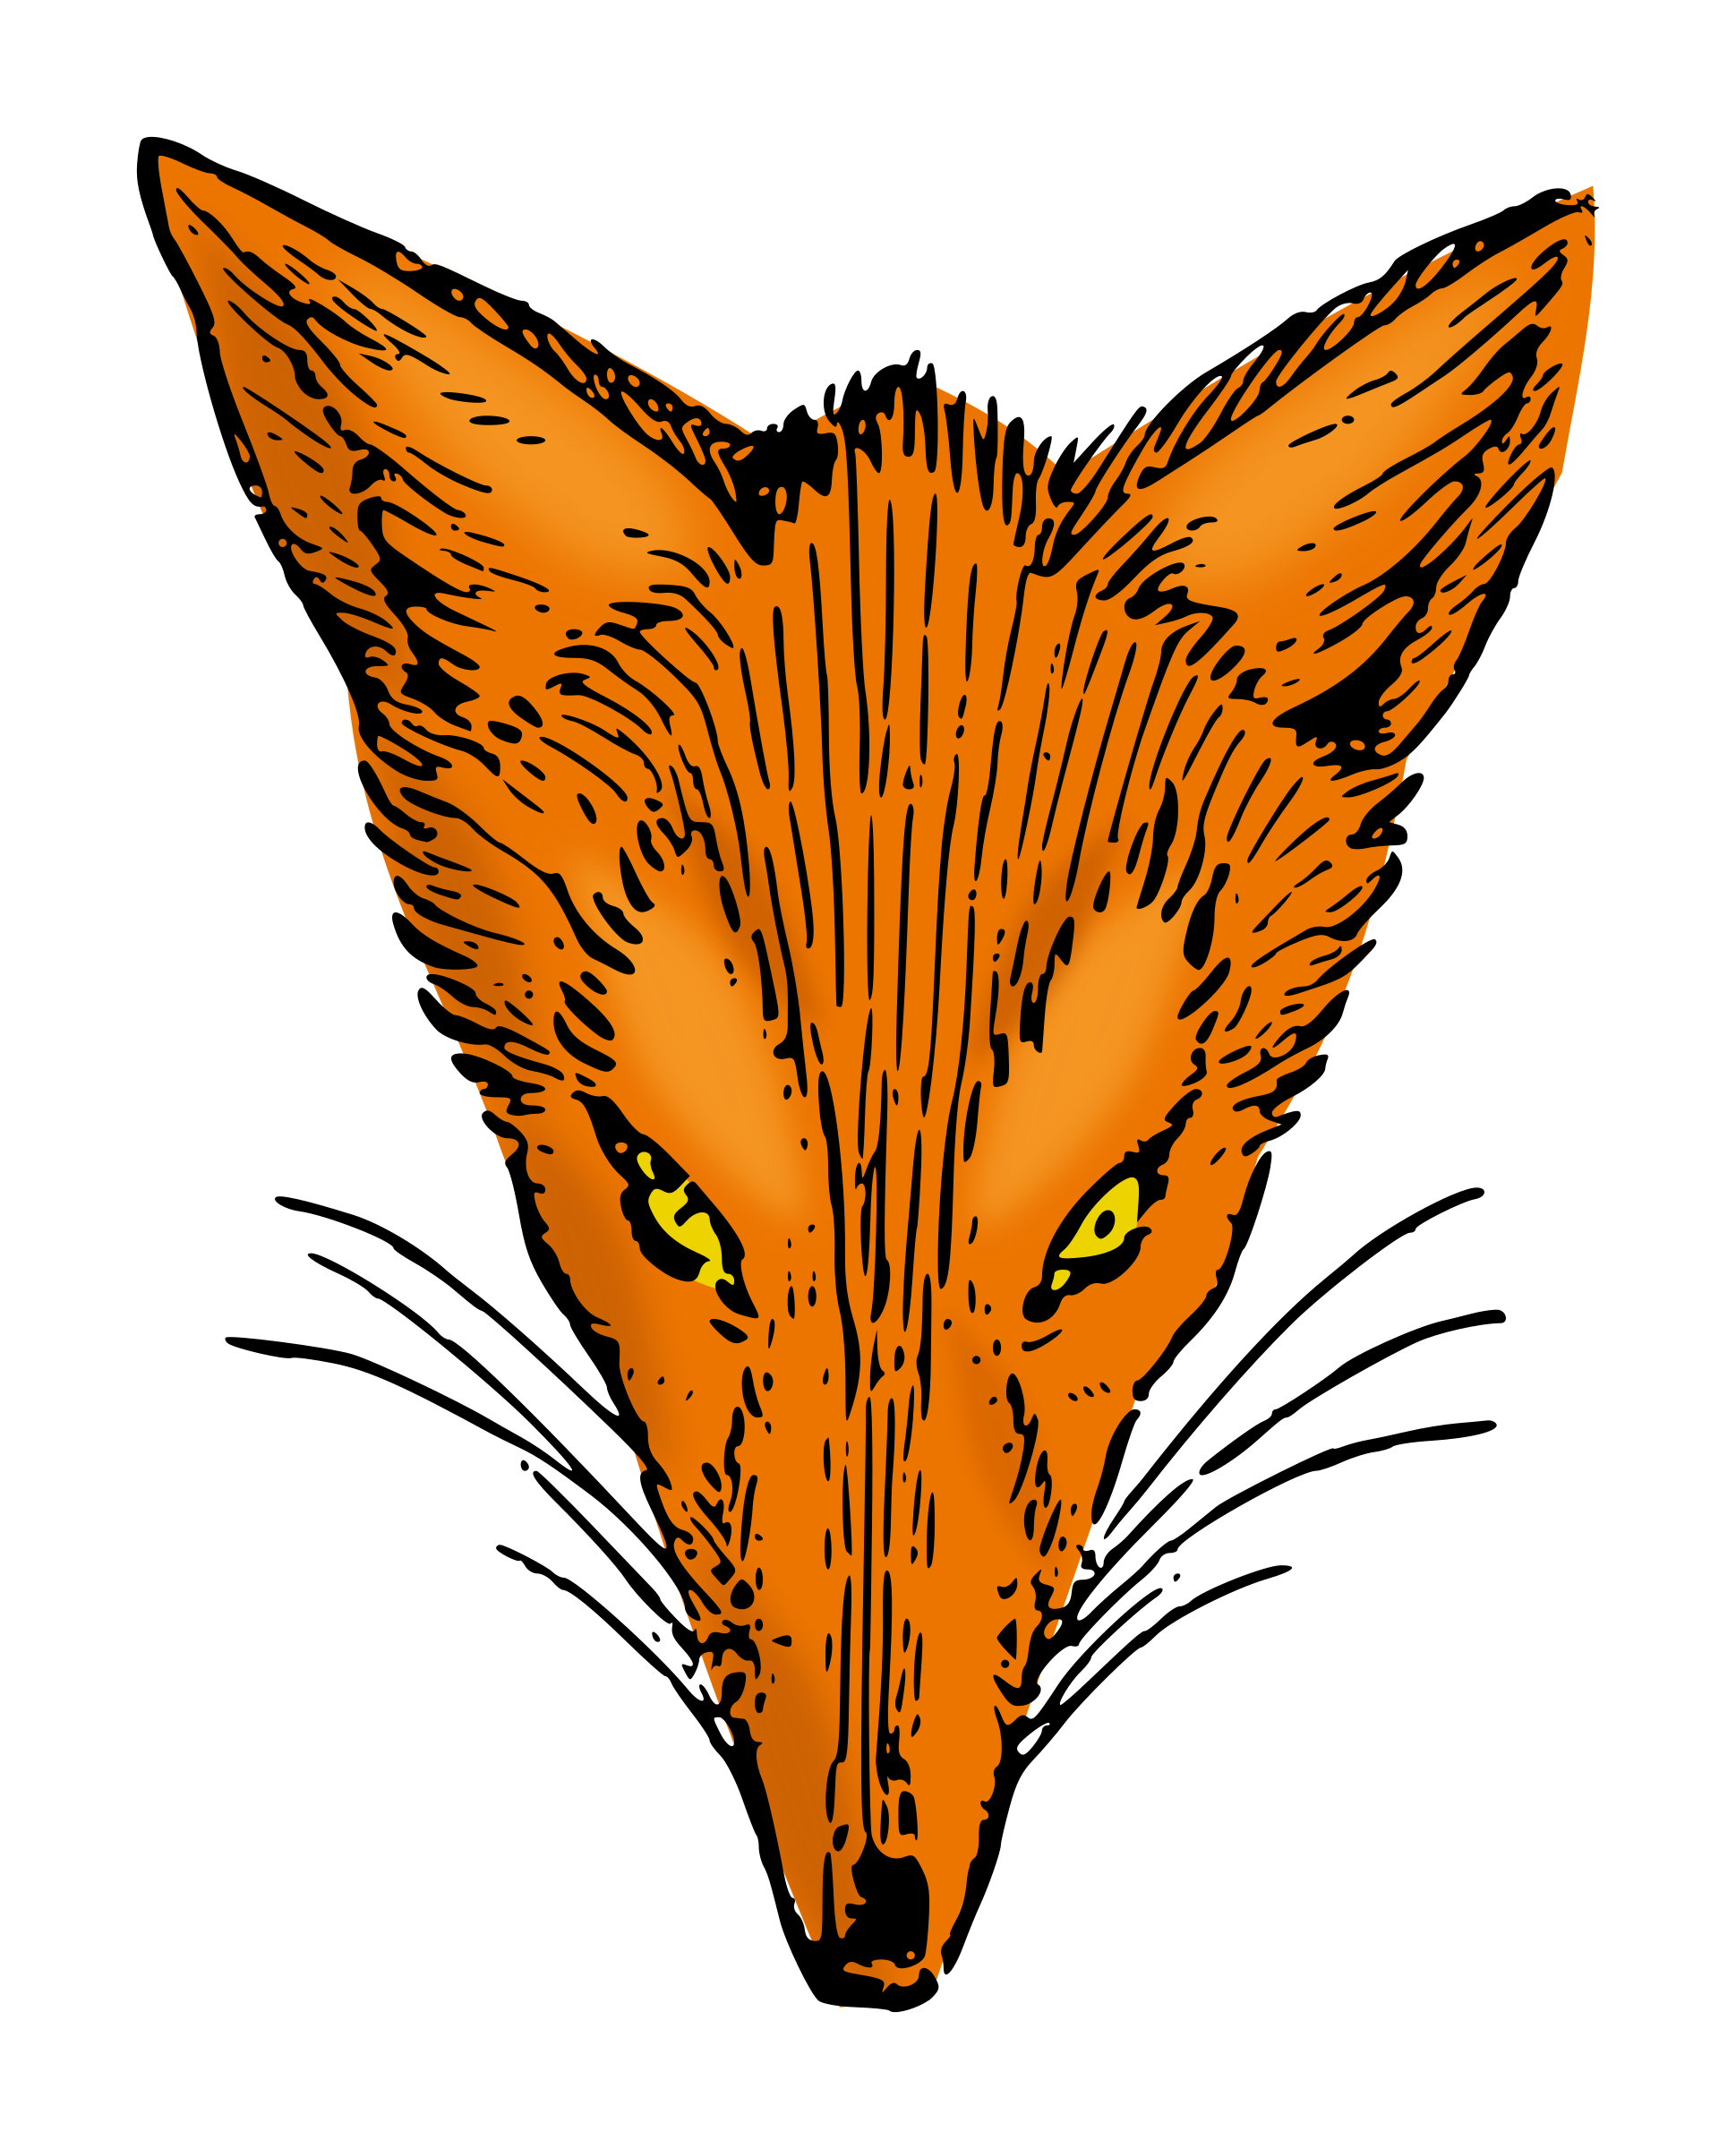 Lutz - Br'er Fox colored by pitr